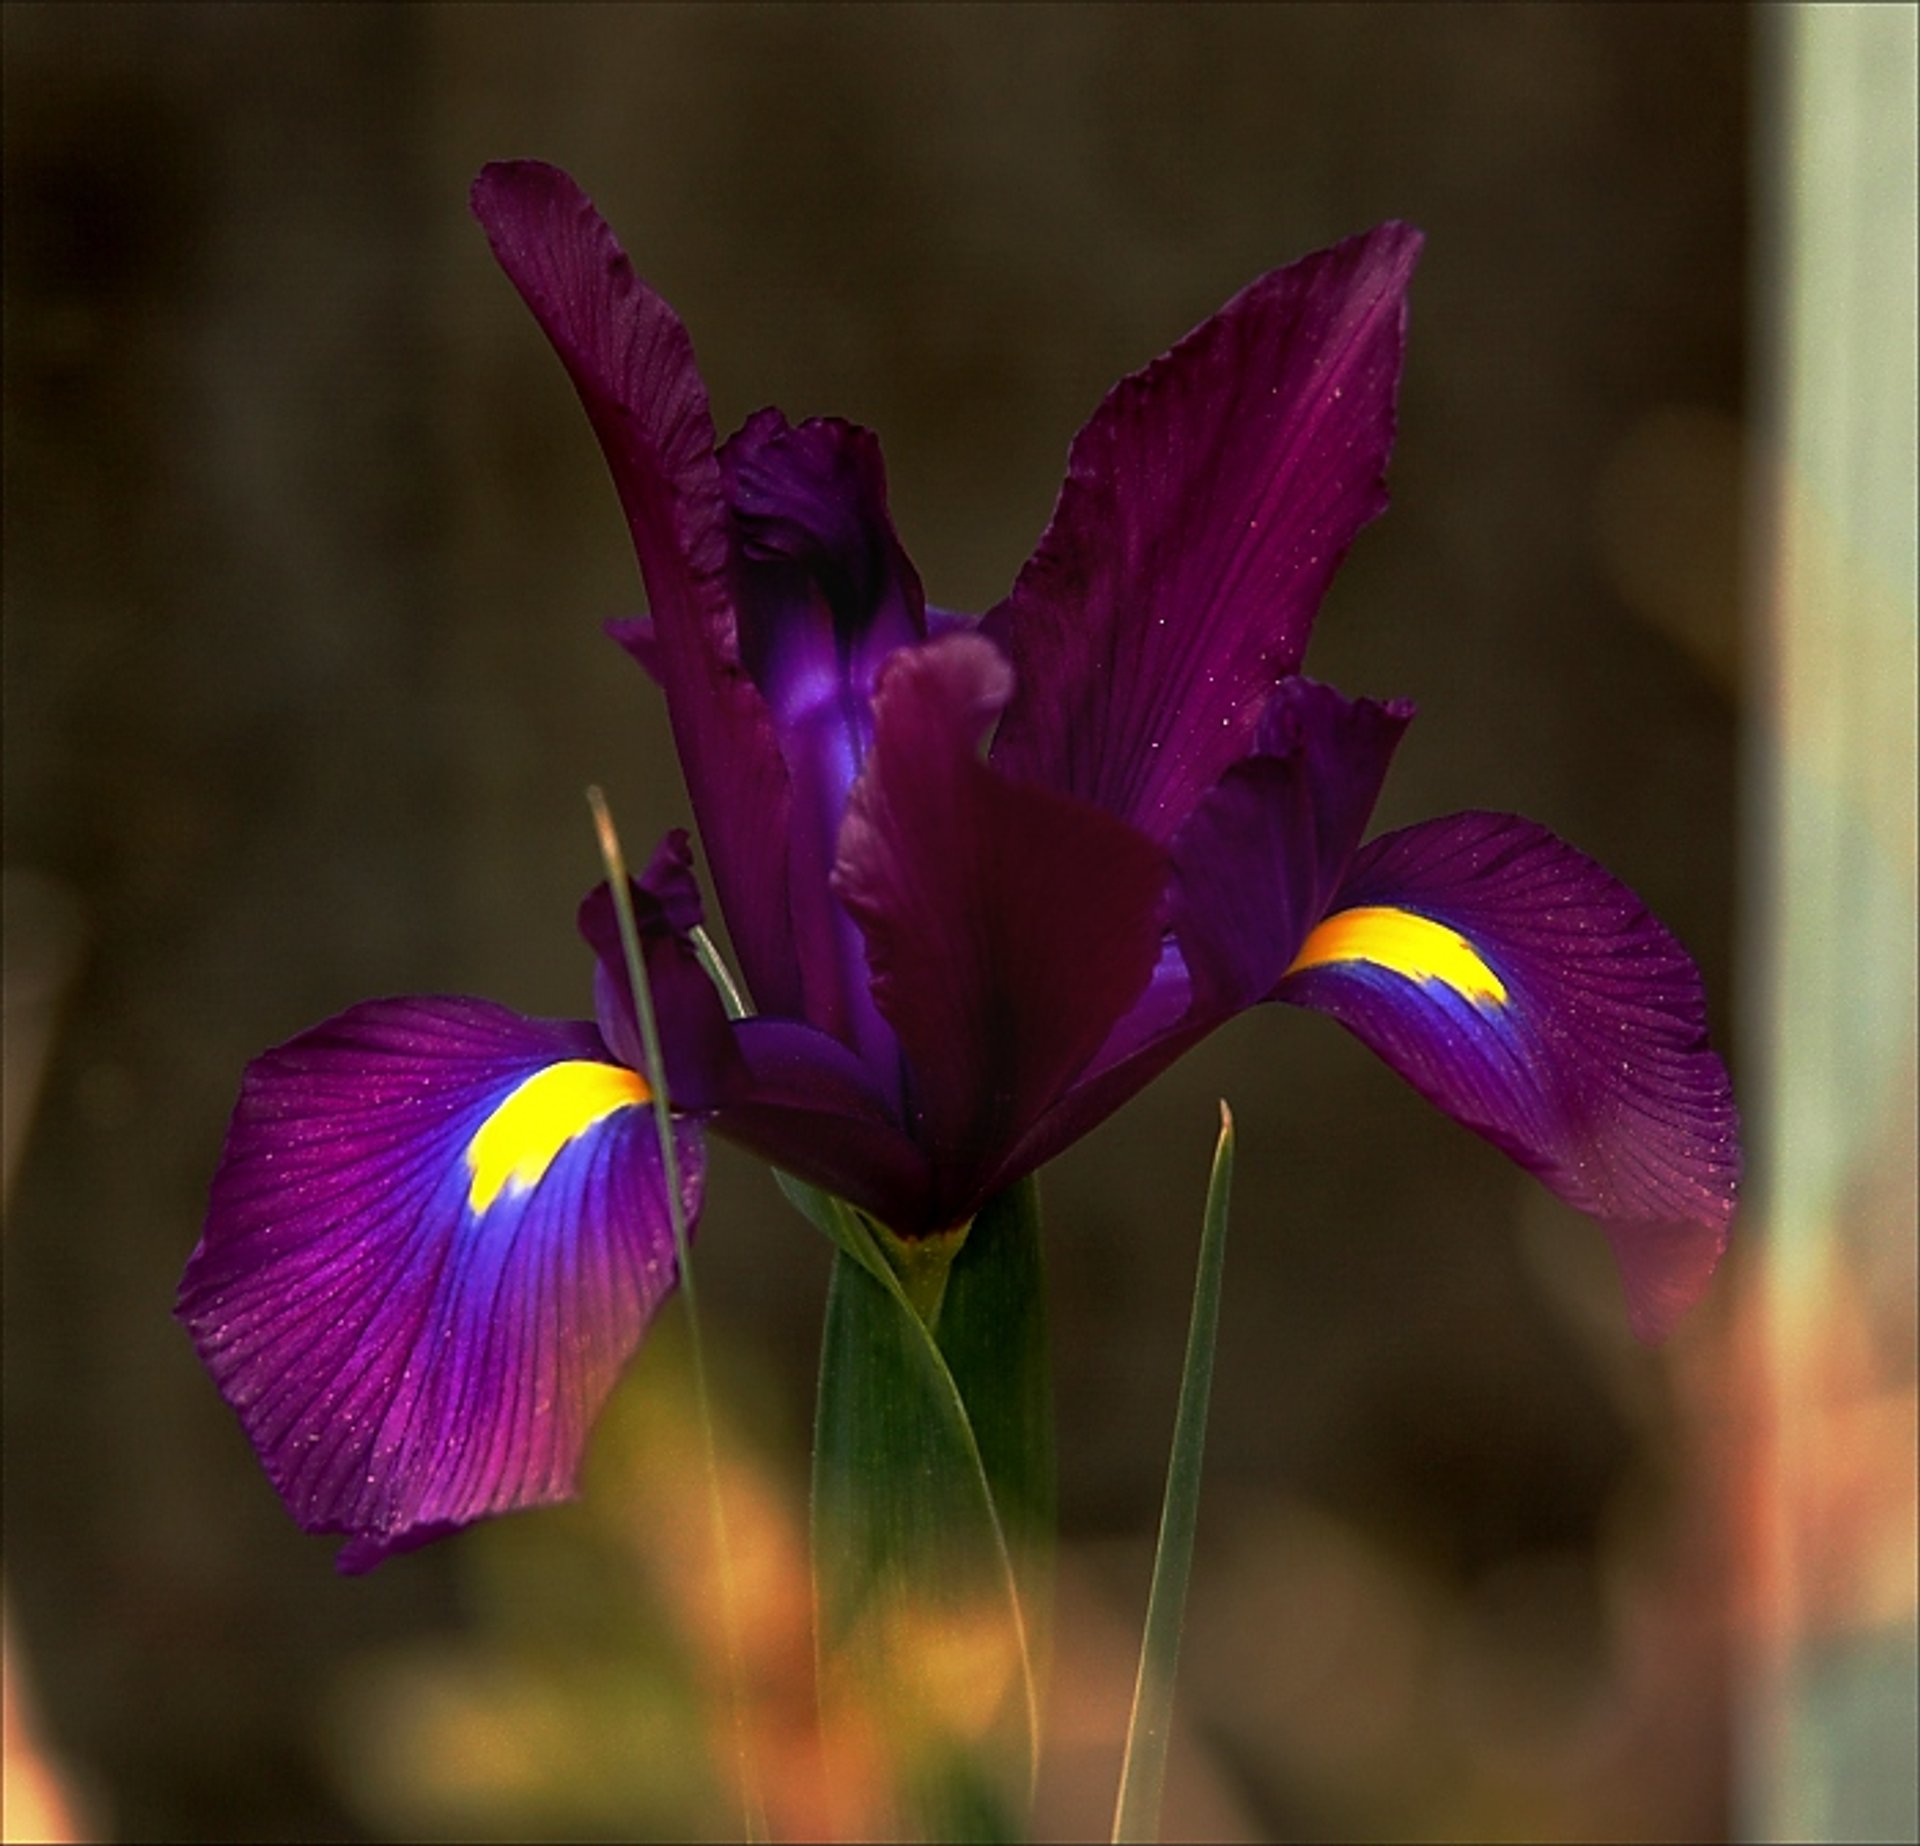 Black Iris in Jordan - Best Season 2020